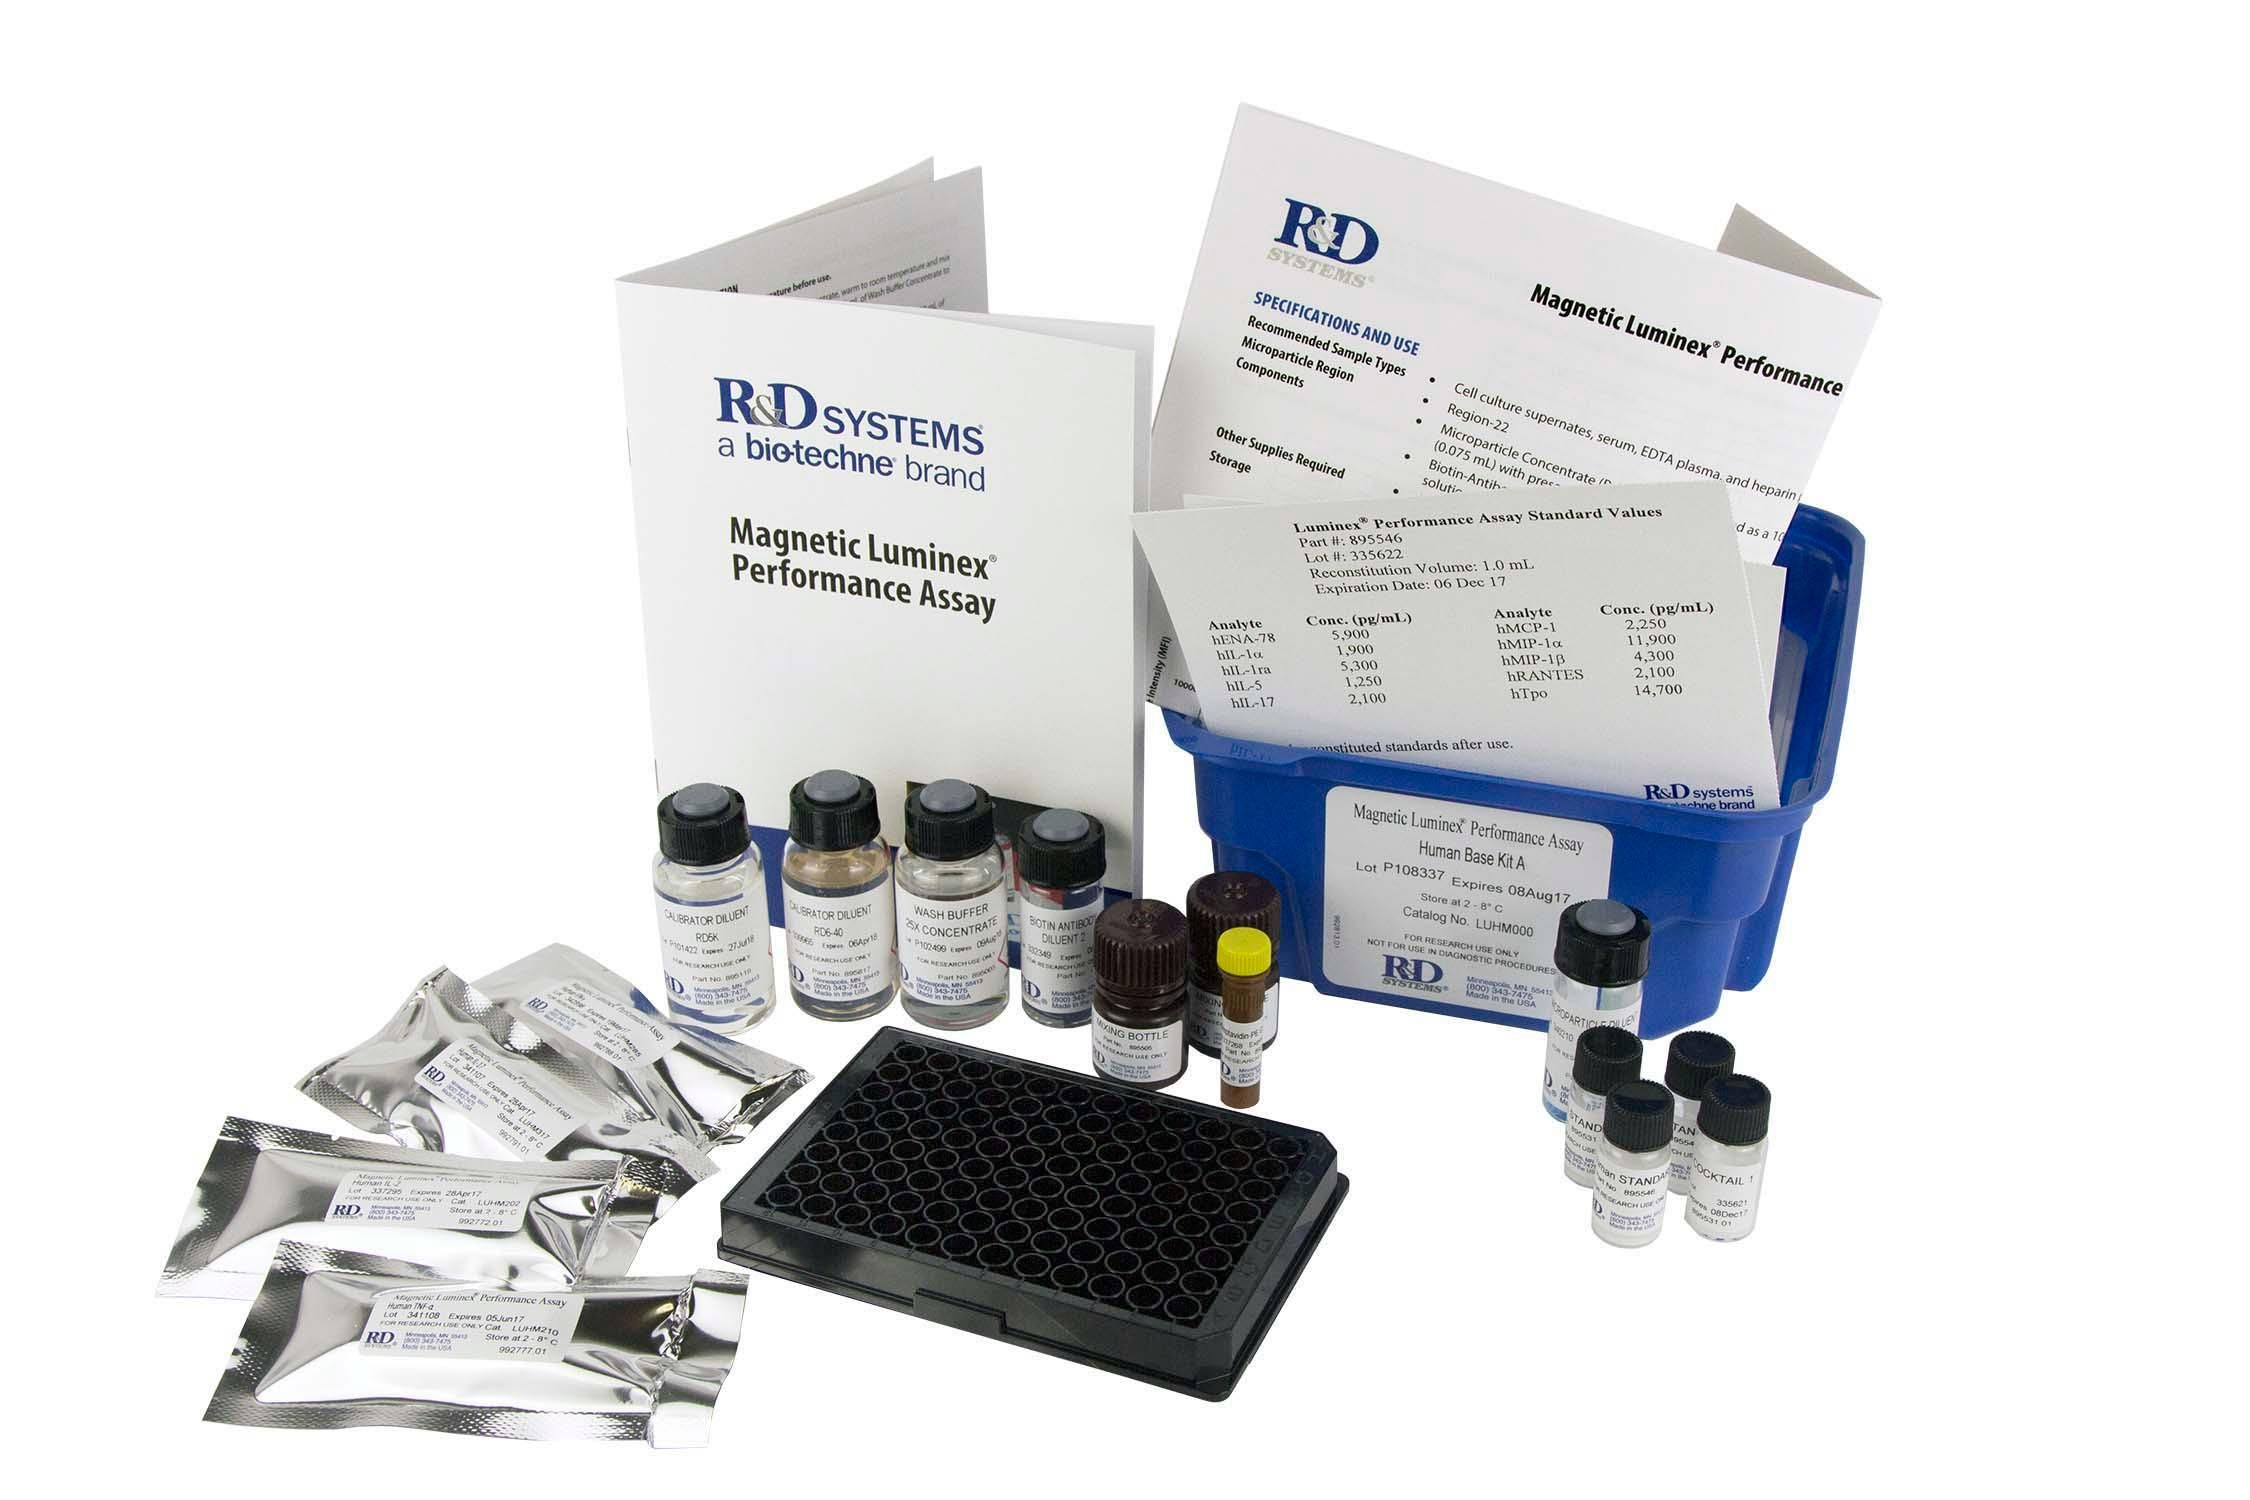 R&D Systems: Human IL-4 HS Magnetic Luminex Performance Assay